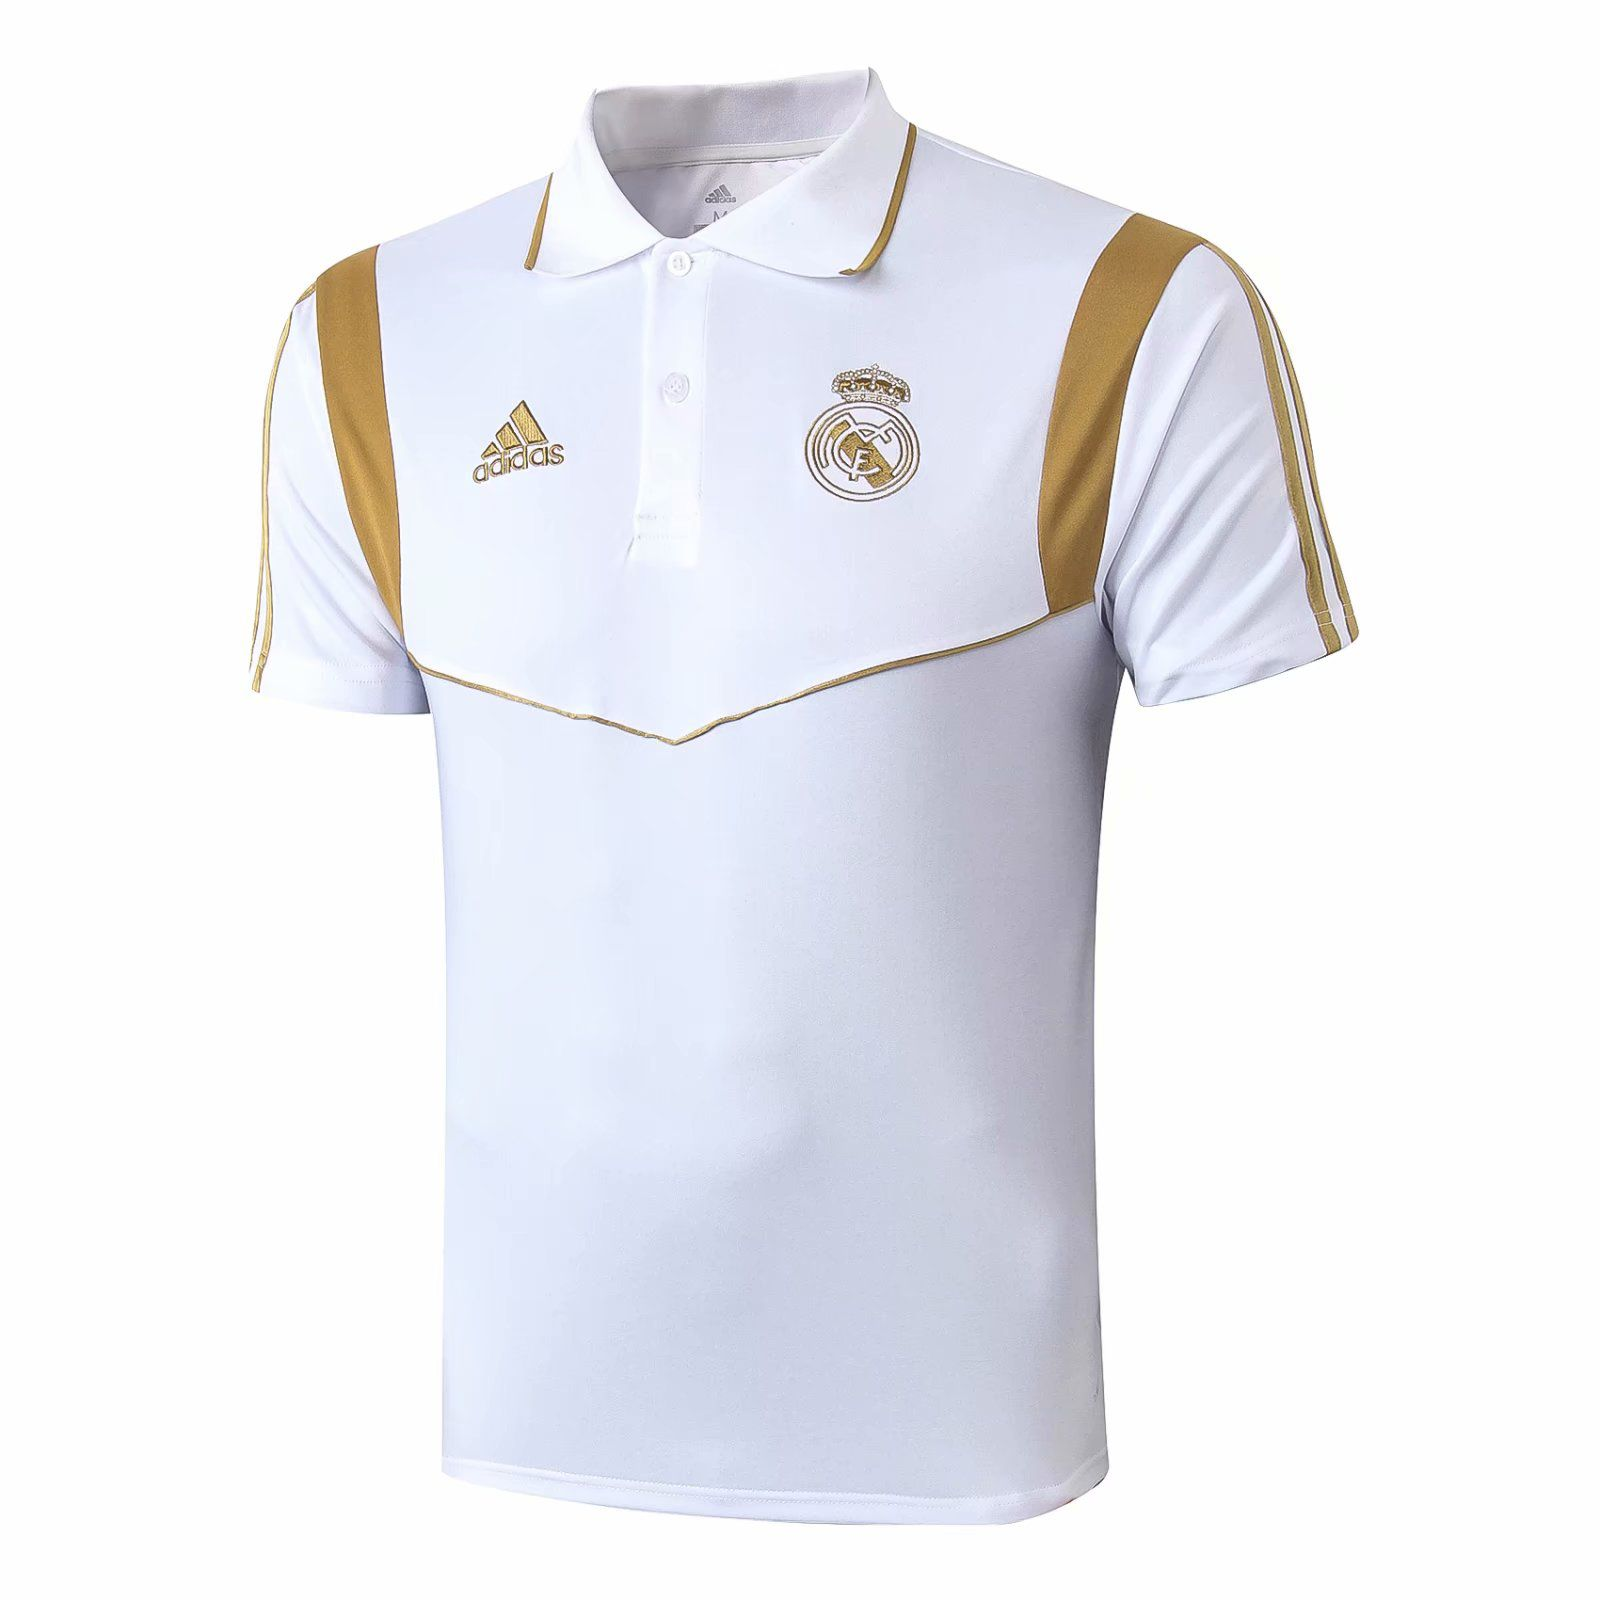 REAL MADRID CAMISA POLO 2020